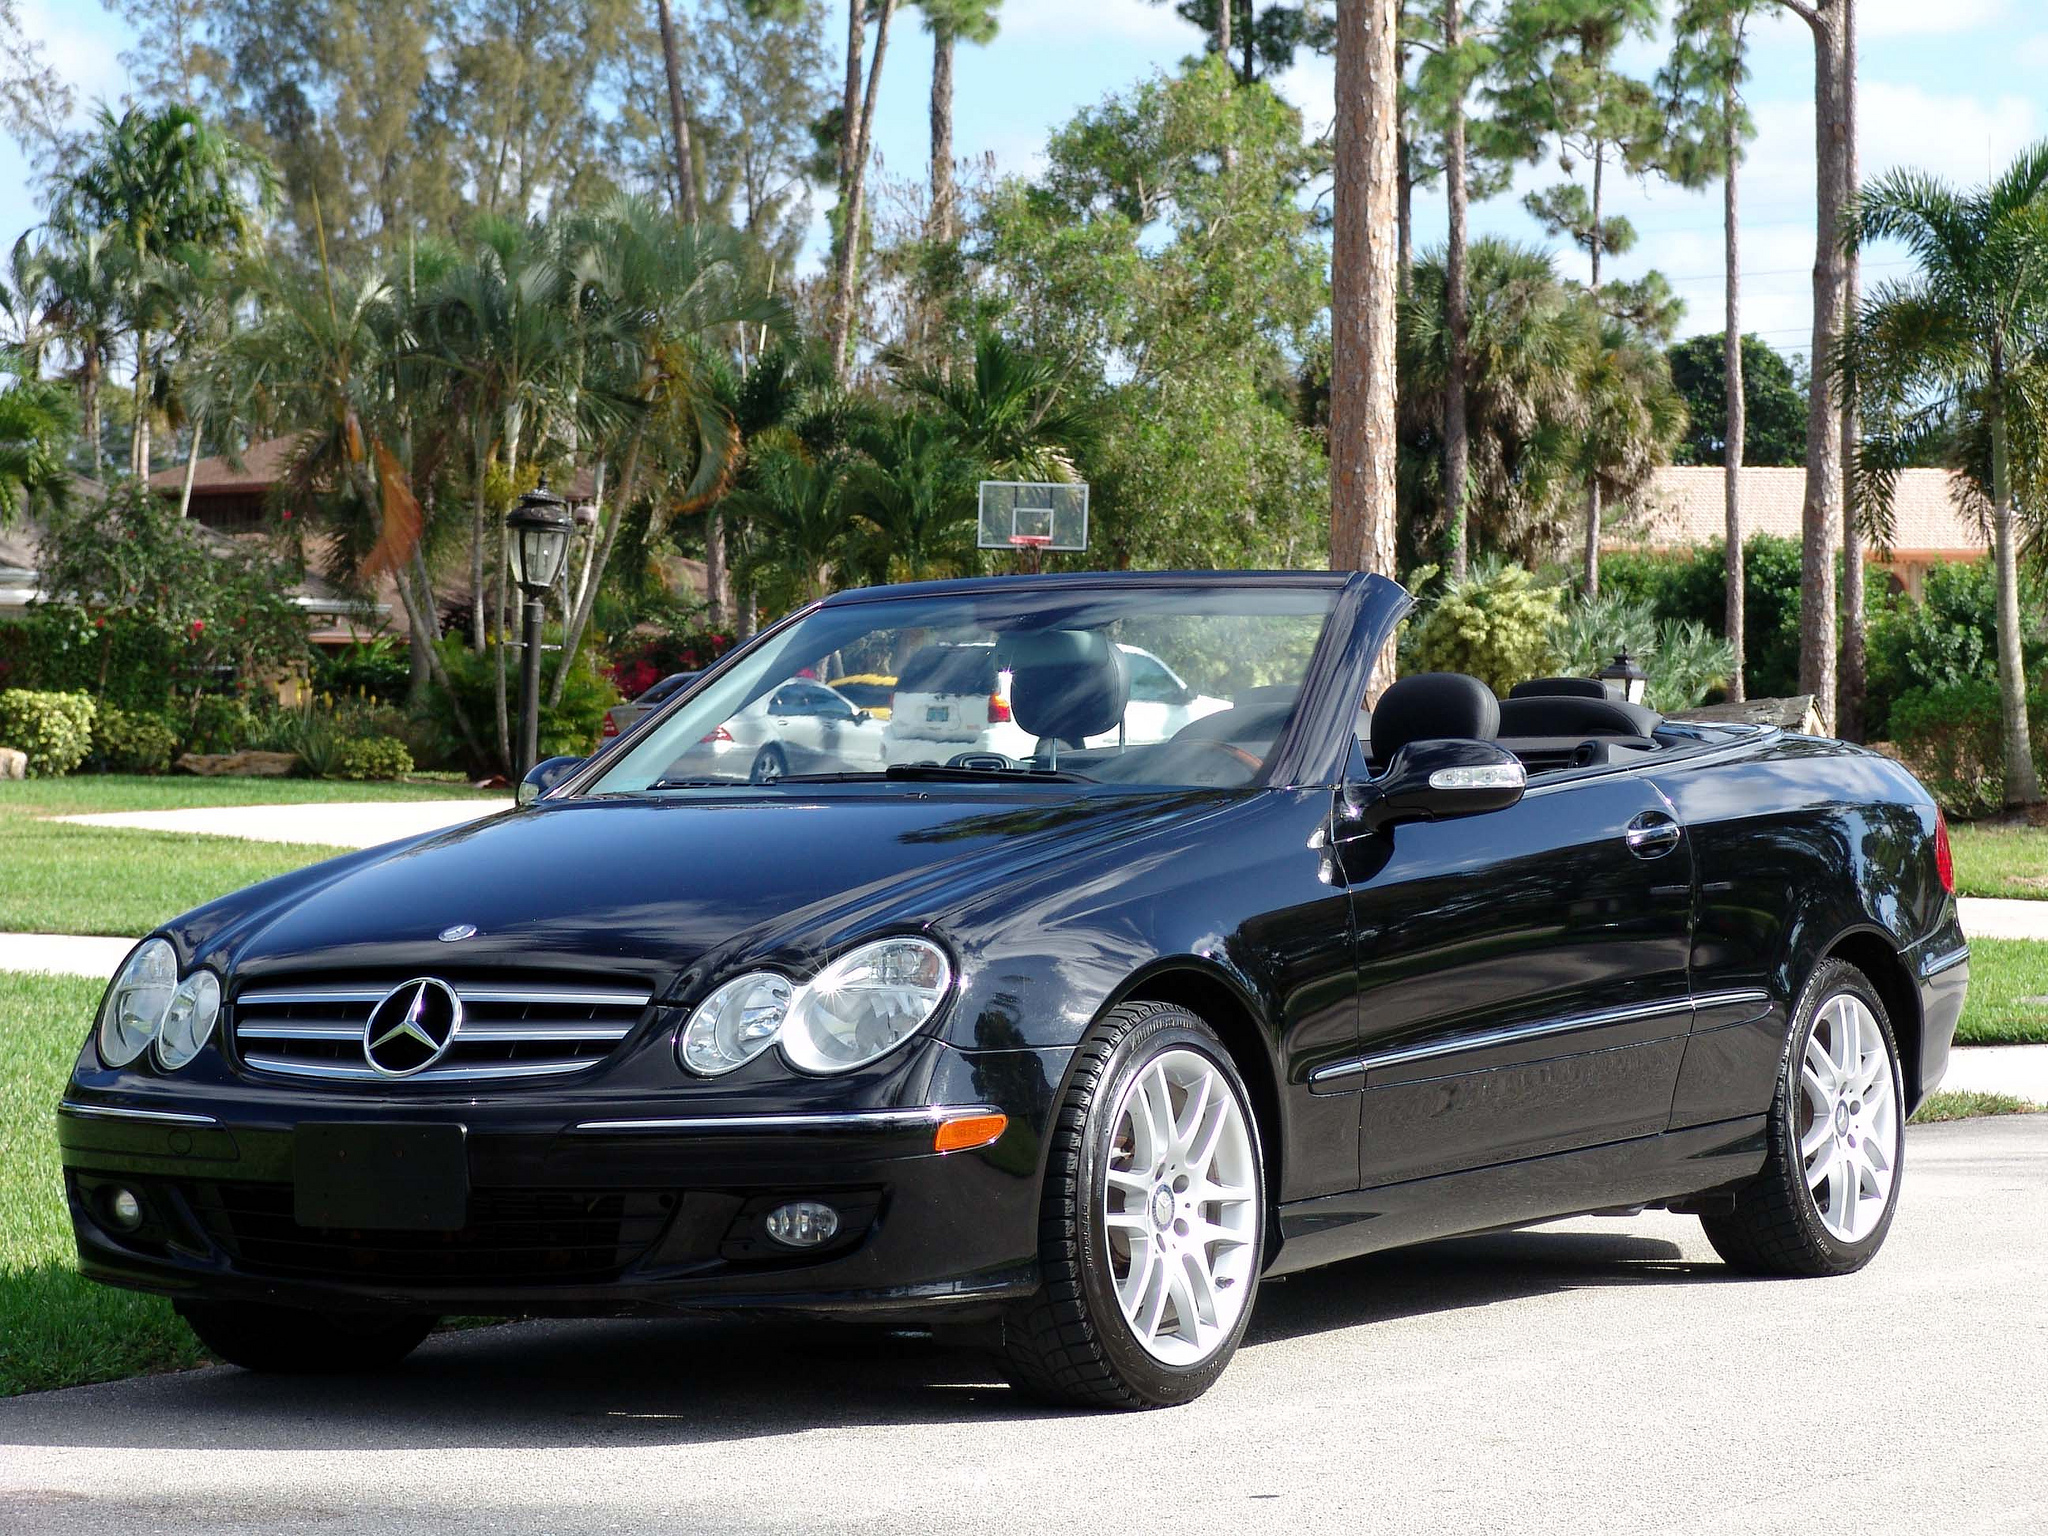 2003 mercedes benz clk 320 owners manual for Mercedes benz clk